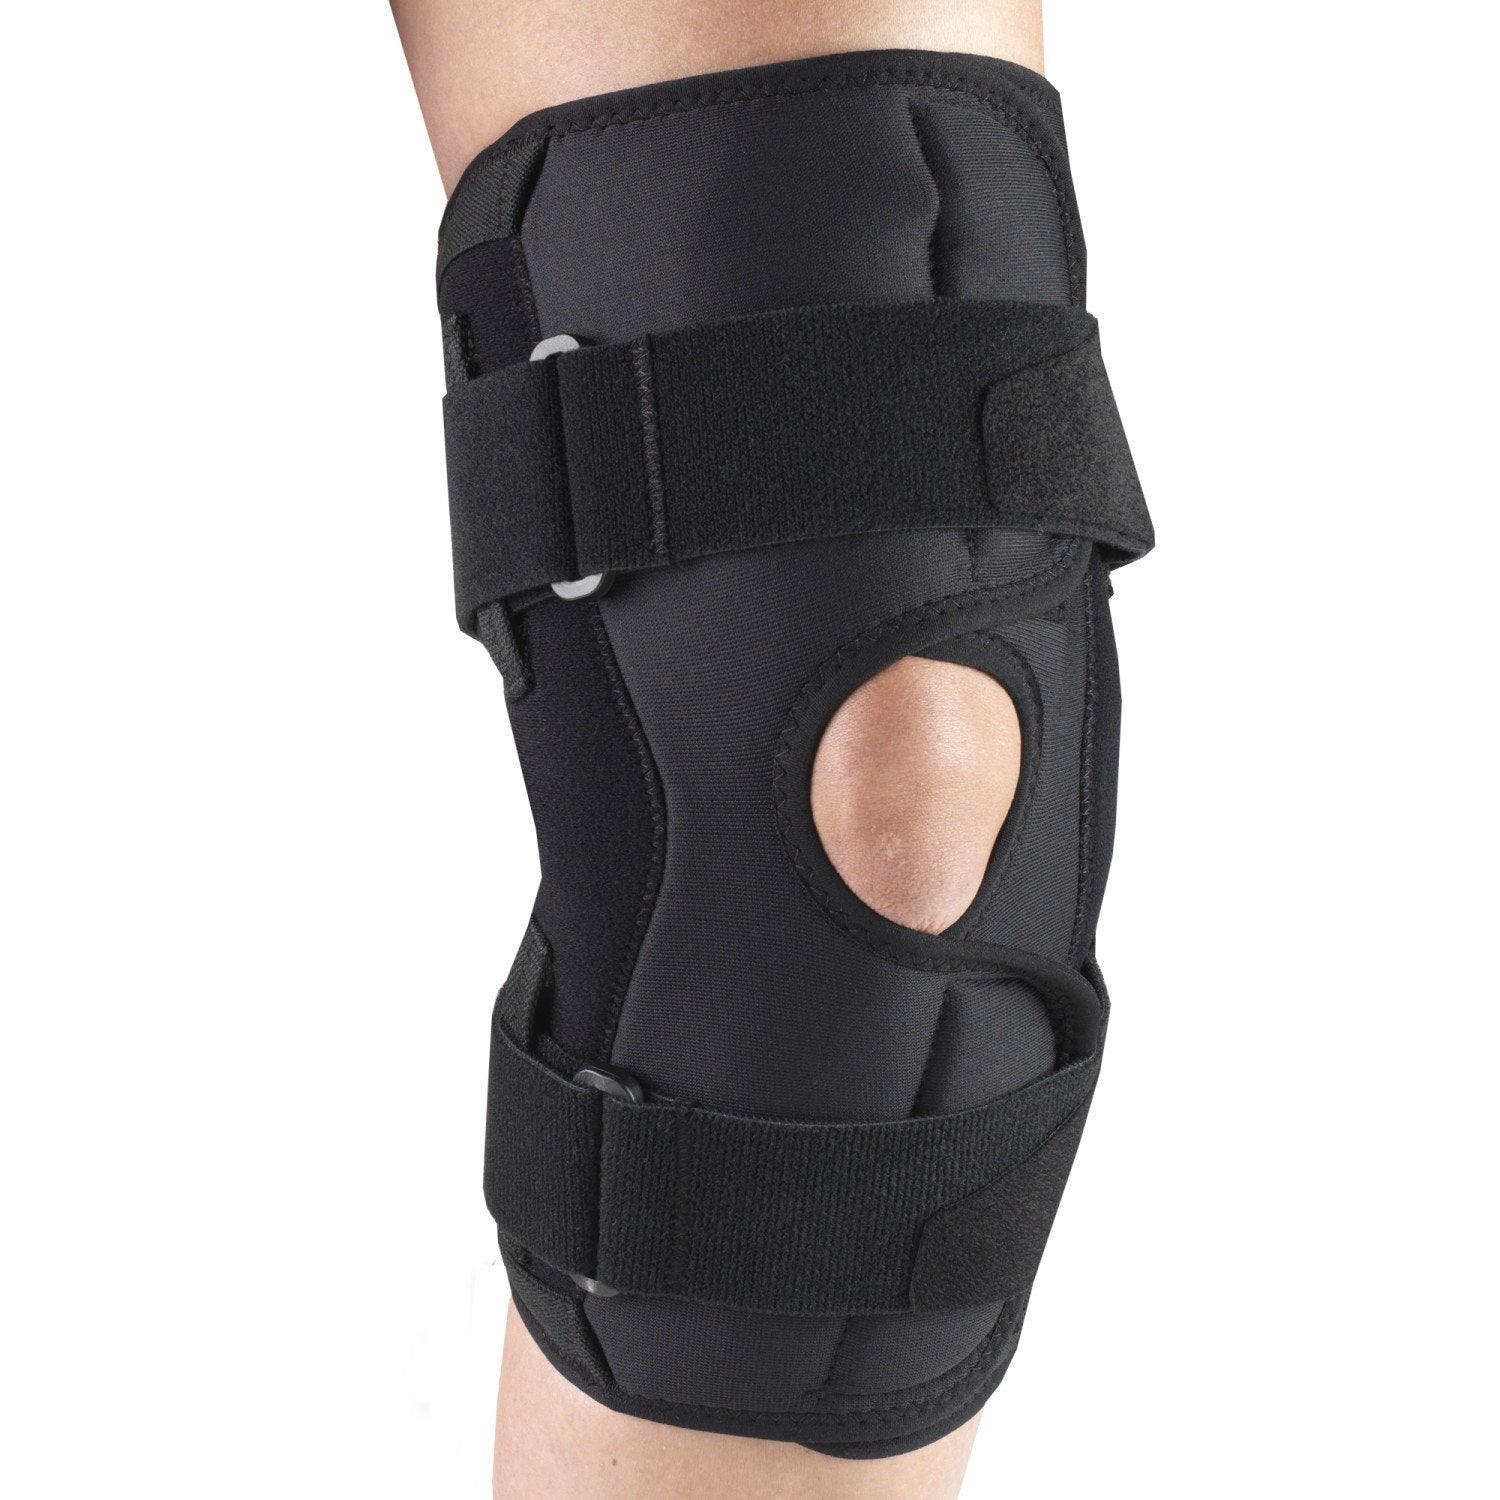 2544 / ORTHOTEX KNEE STABILIZER WRAP - HINGED BARS